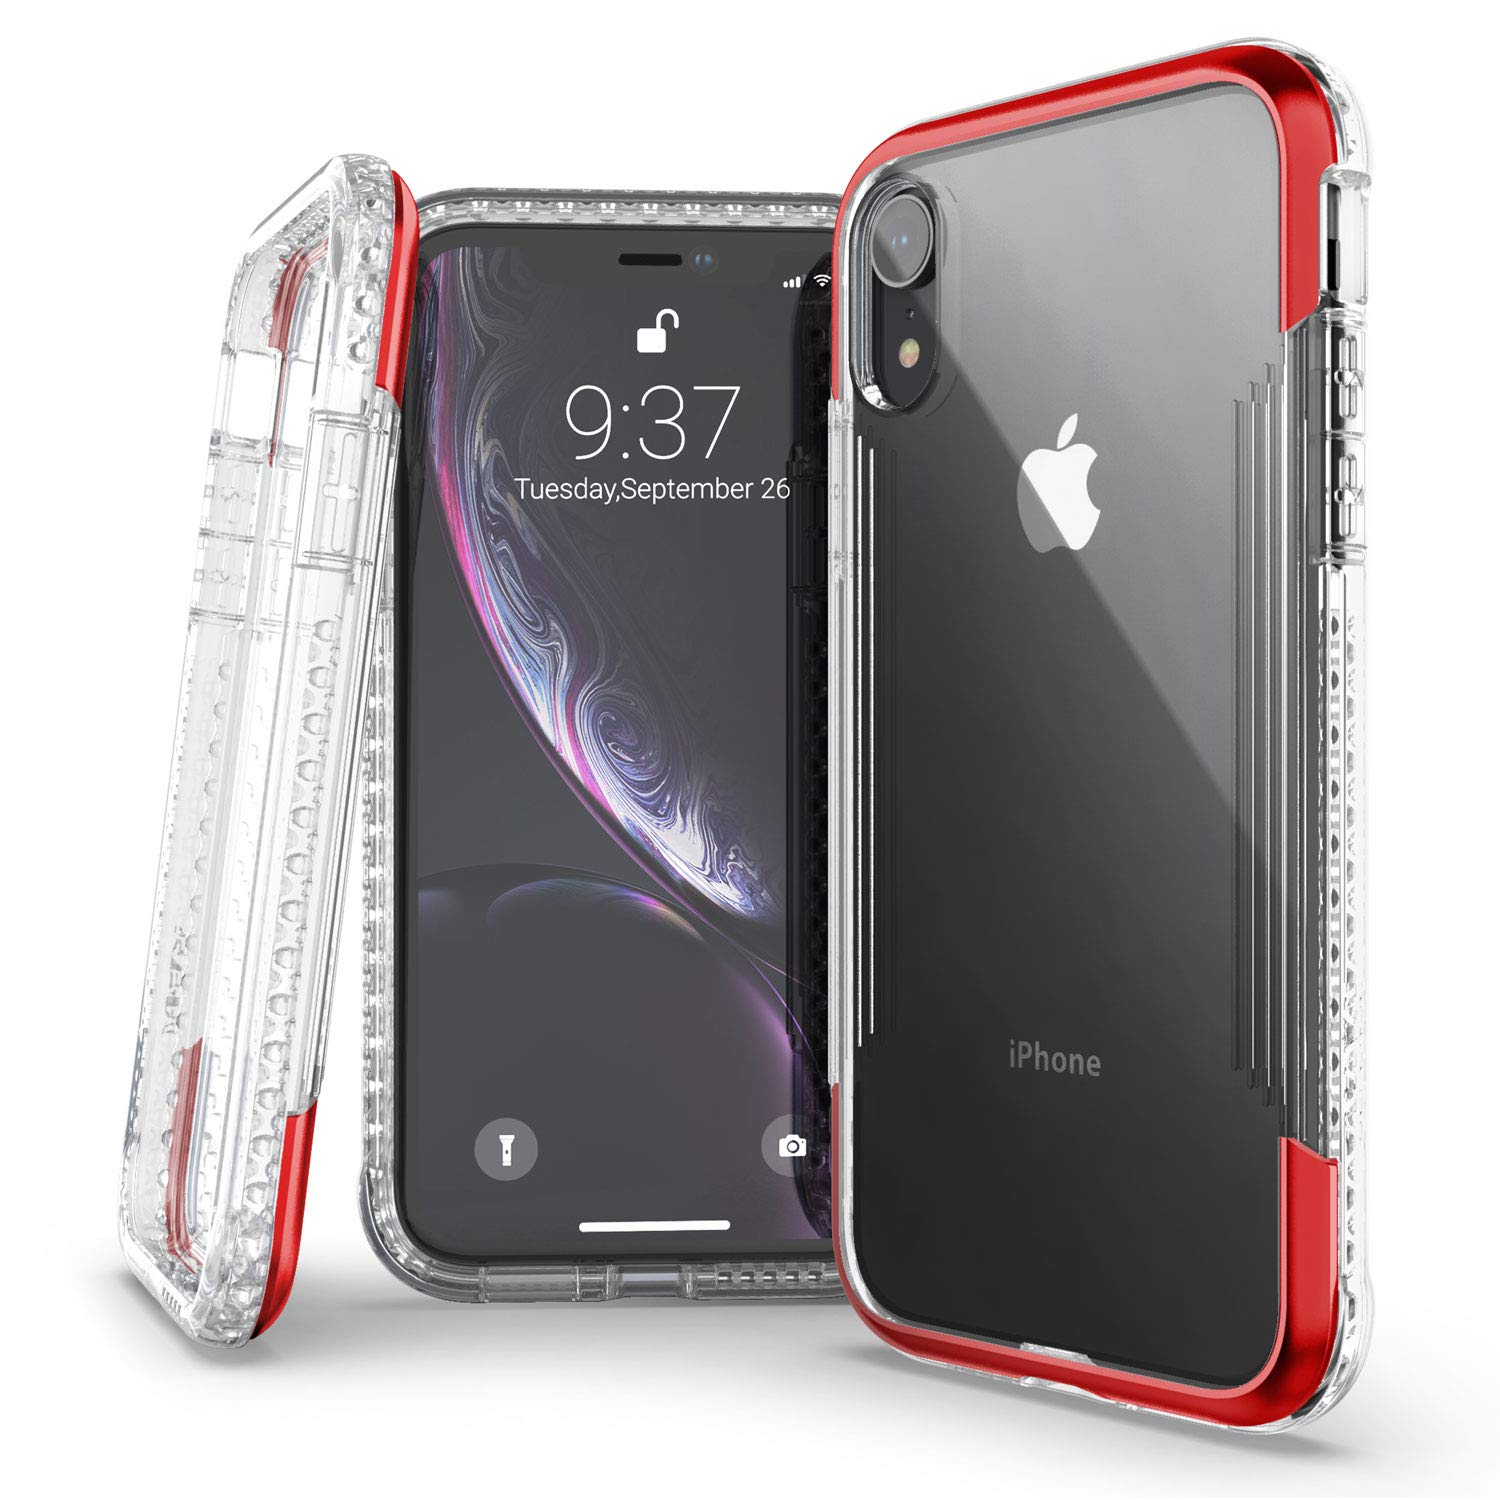 X-Doria Defense Air Series, iPhone XR Case - Military Grade Drop Tested, Anodized Aluminum, TPU, and Polycarbonate Protective Case for Apple iPhone XR, 6.1 Inch LCD Screen (Red)